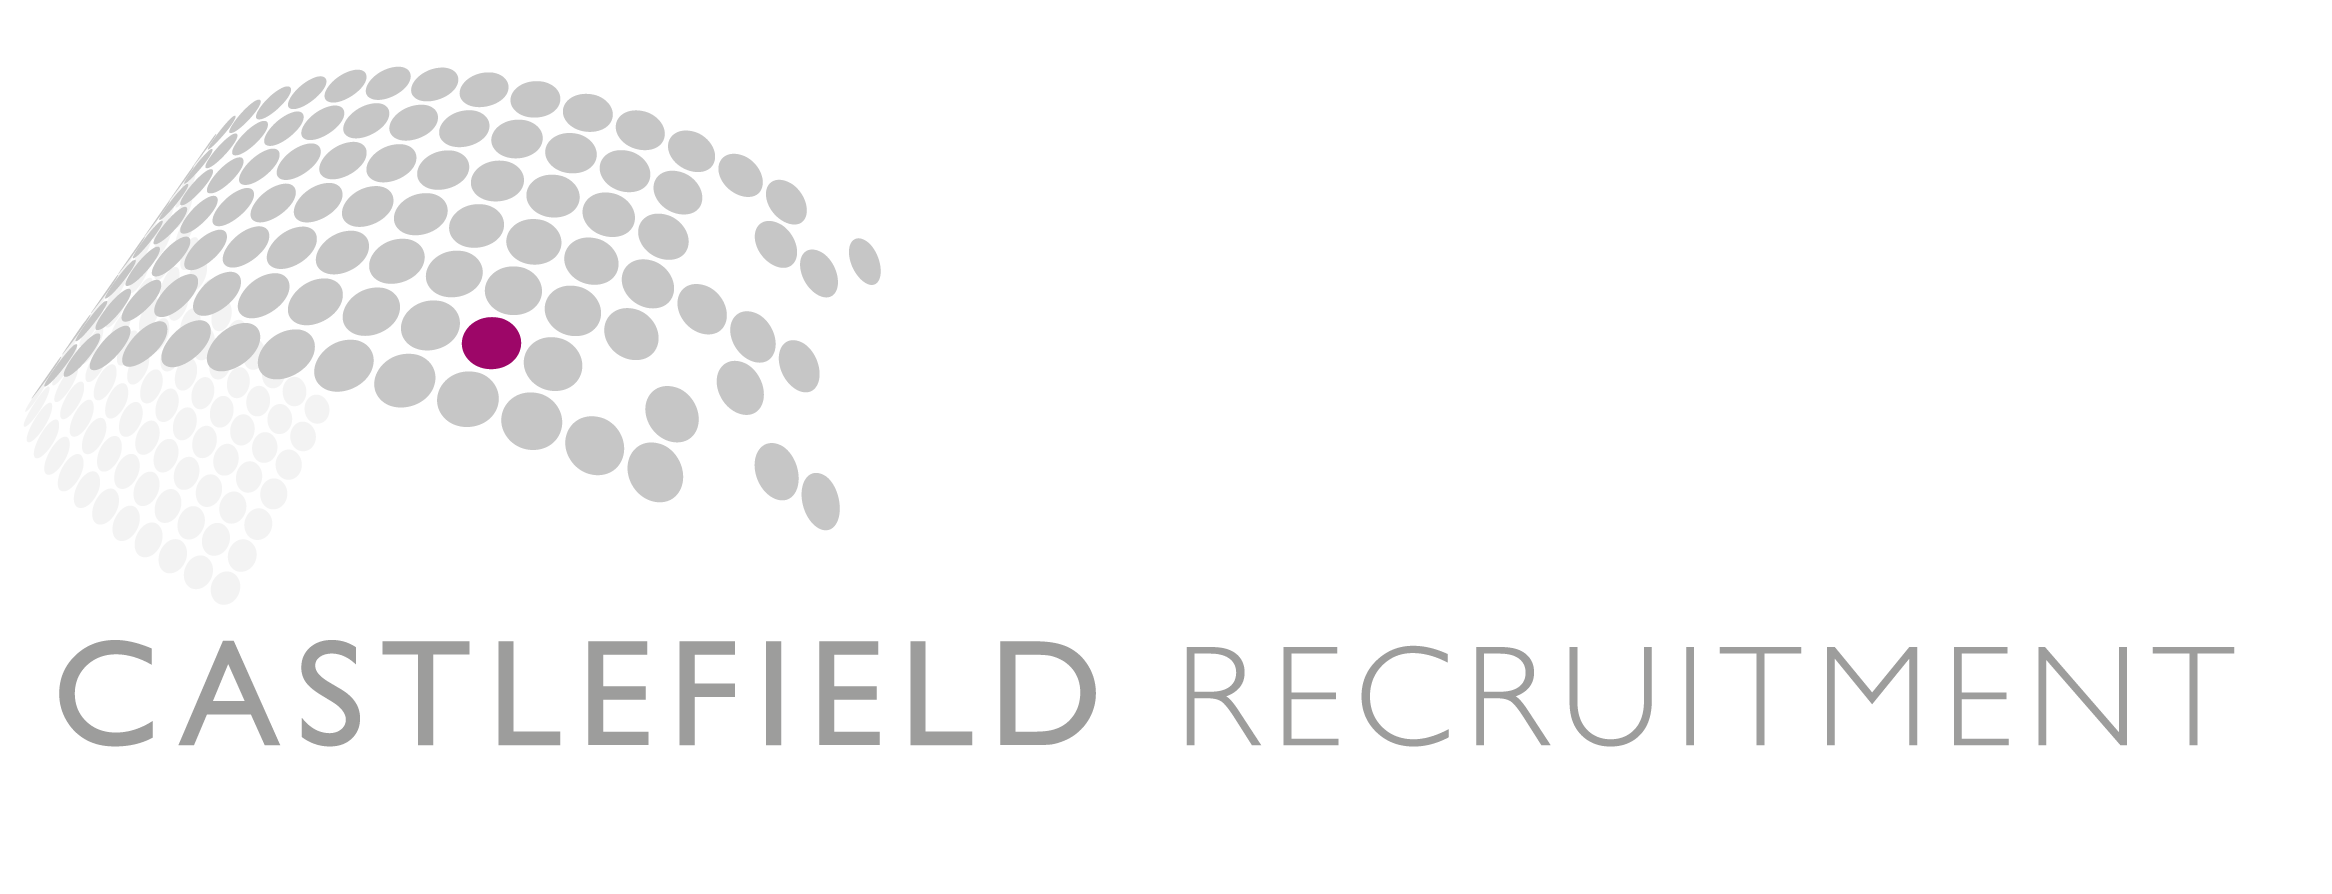 Castle Recruitment Logo png